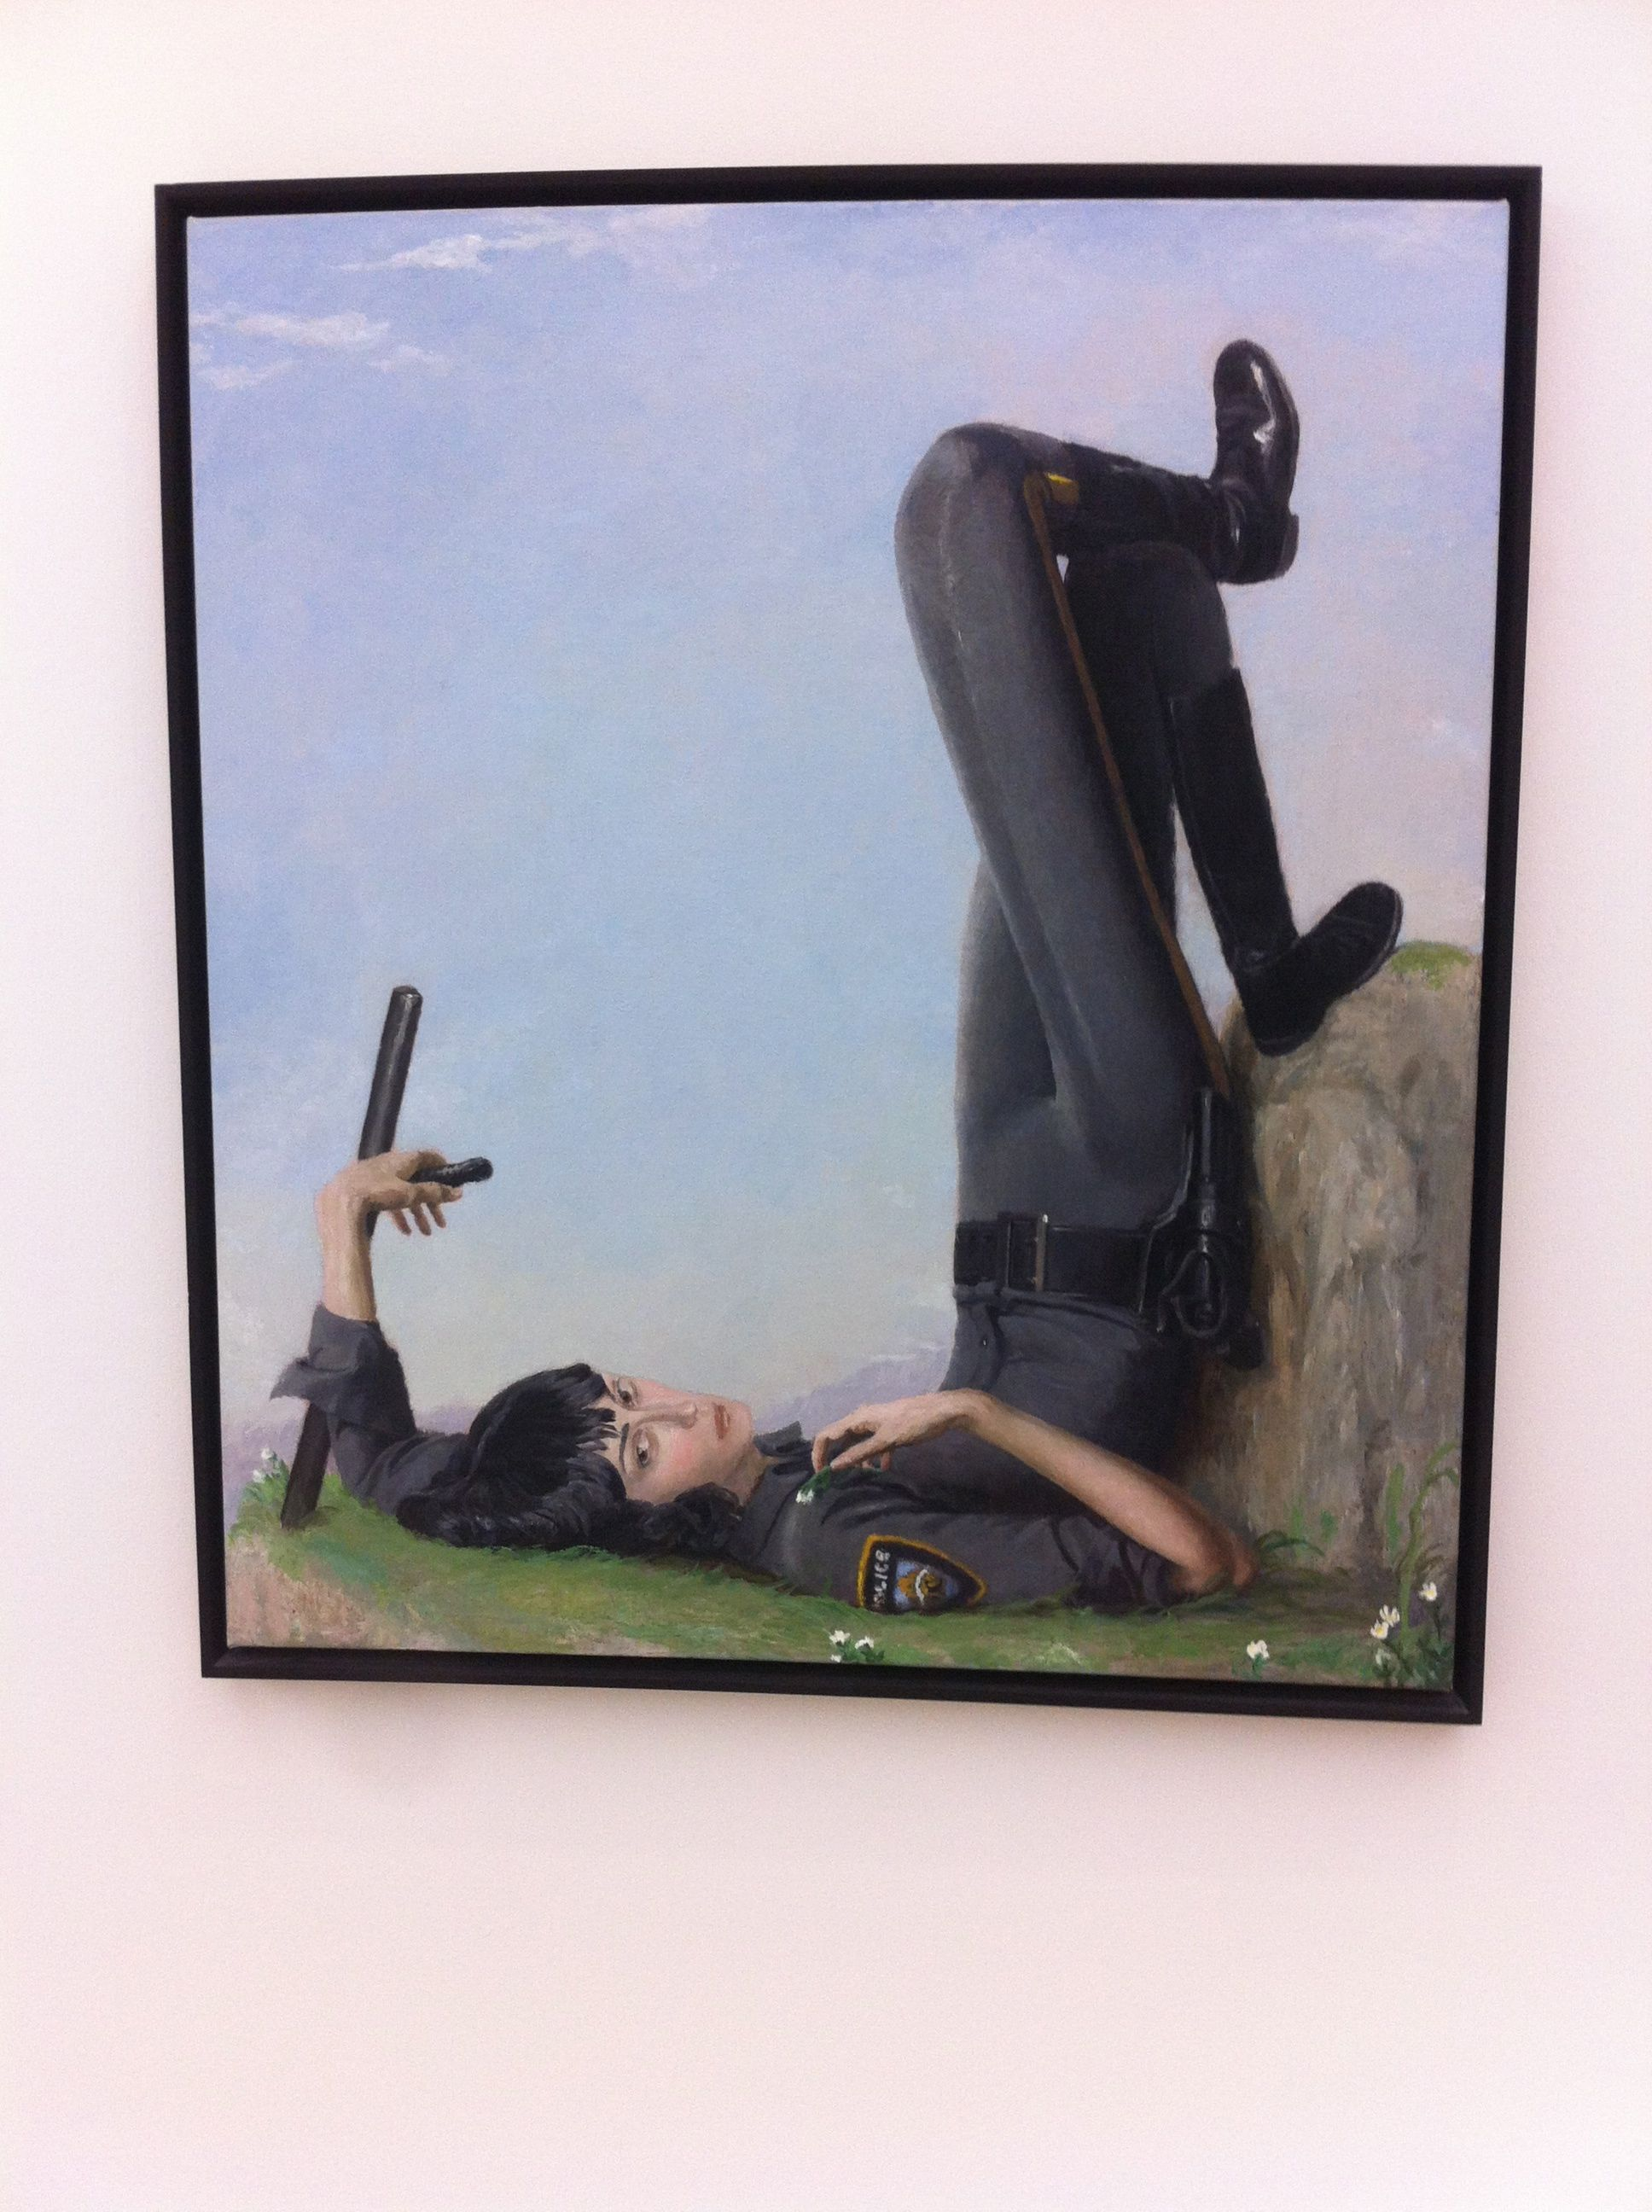 Body Language - Jansson Stegner @ The Saatchi Gallery